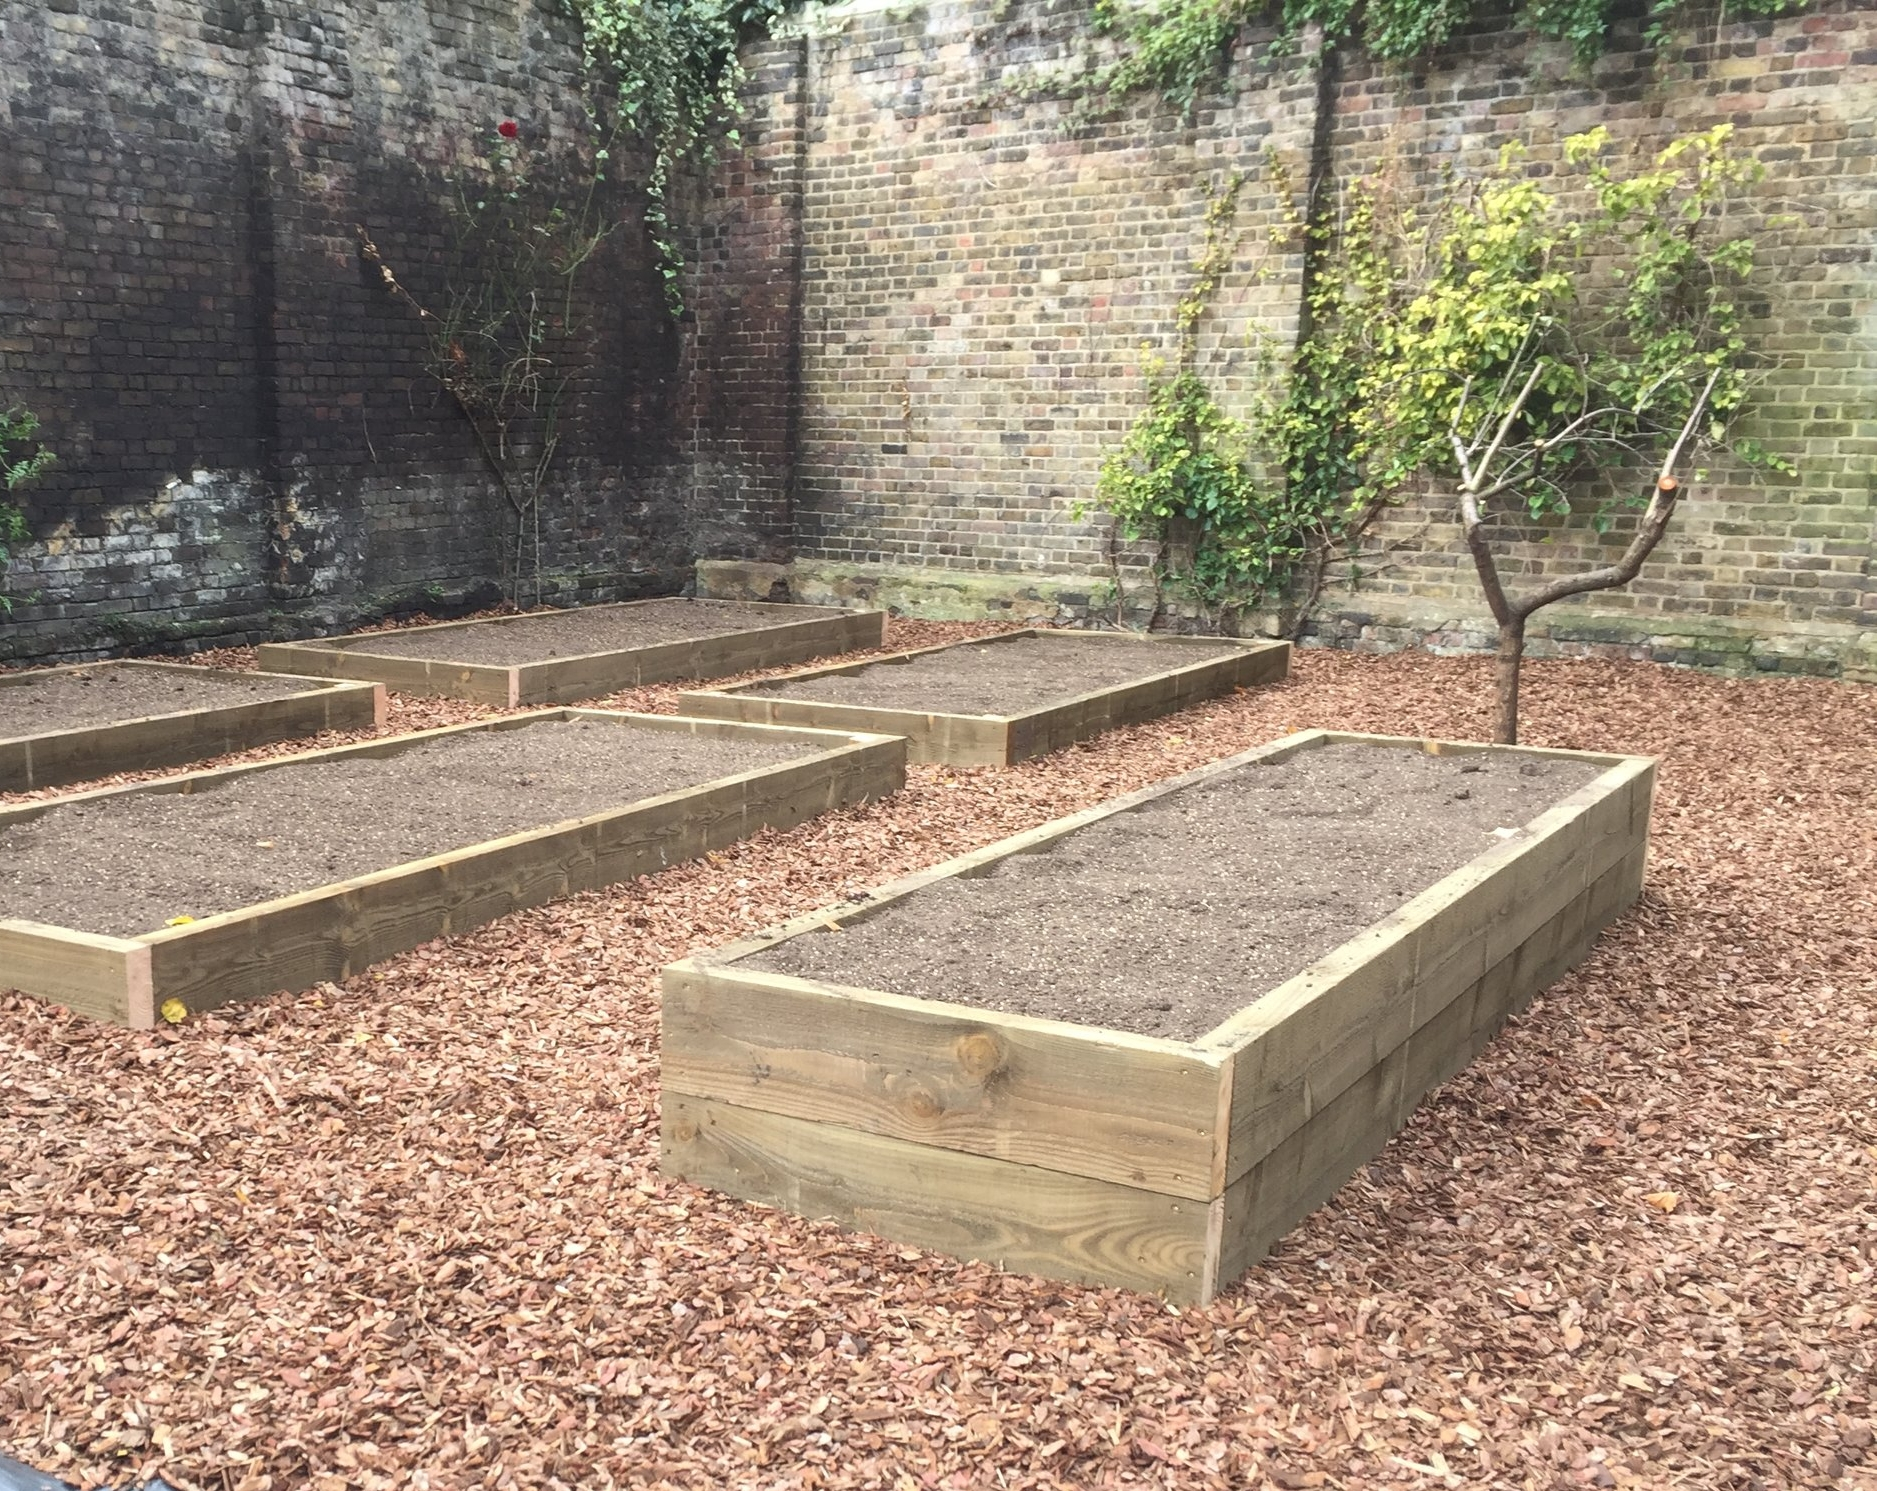 Old Rectory Garden  allotments at Old Rectory Gardens:  simple  raised beds including one for disabled access, a storage shed and a selection of fruit trees. a simple, effective and highly functional allotment garden.